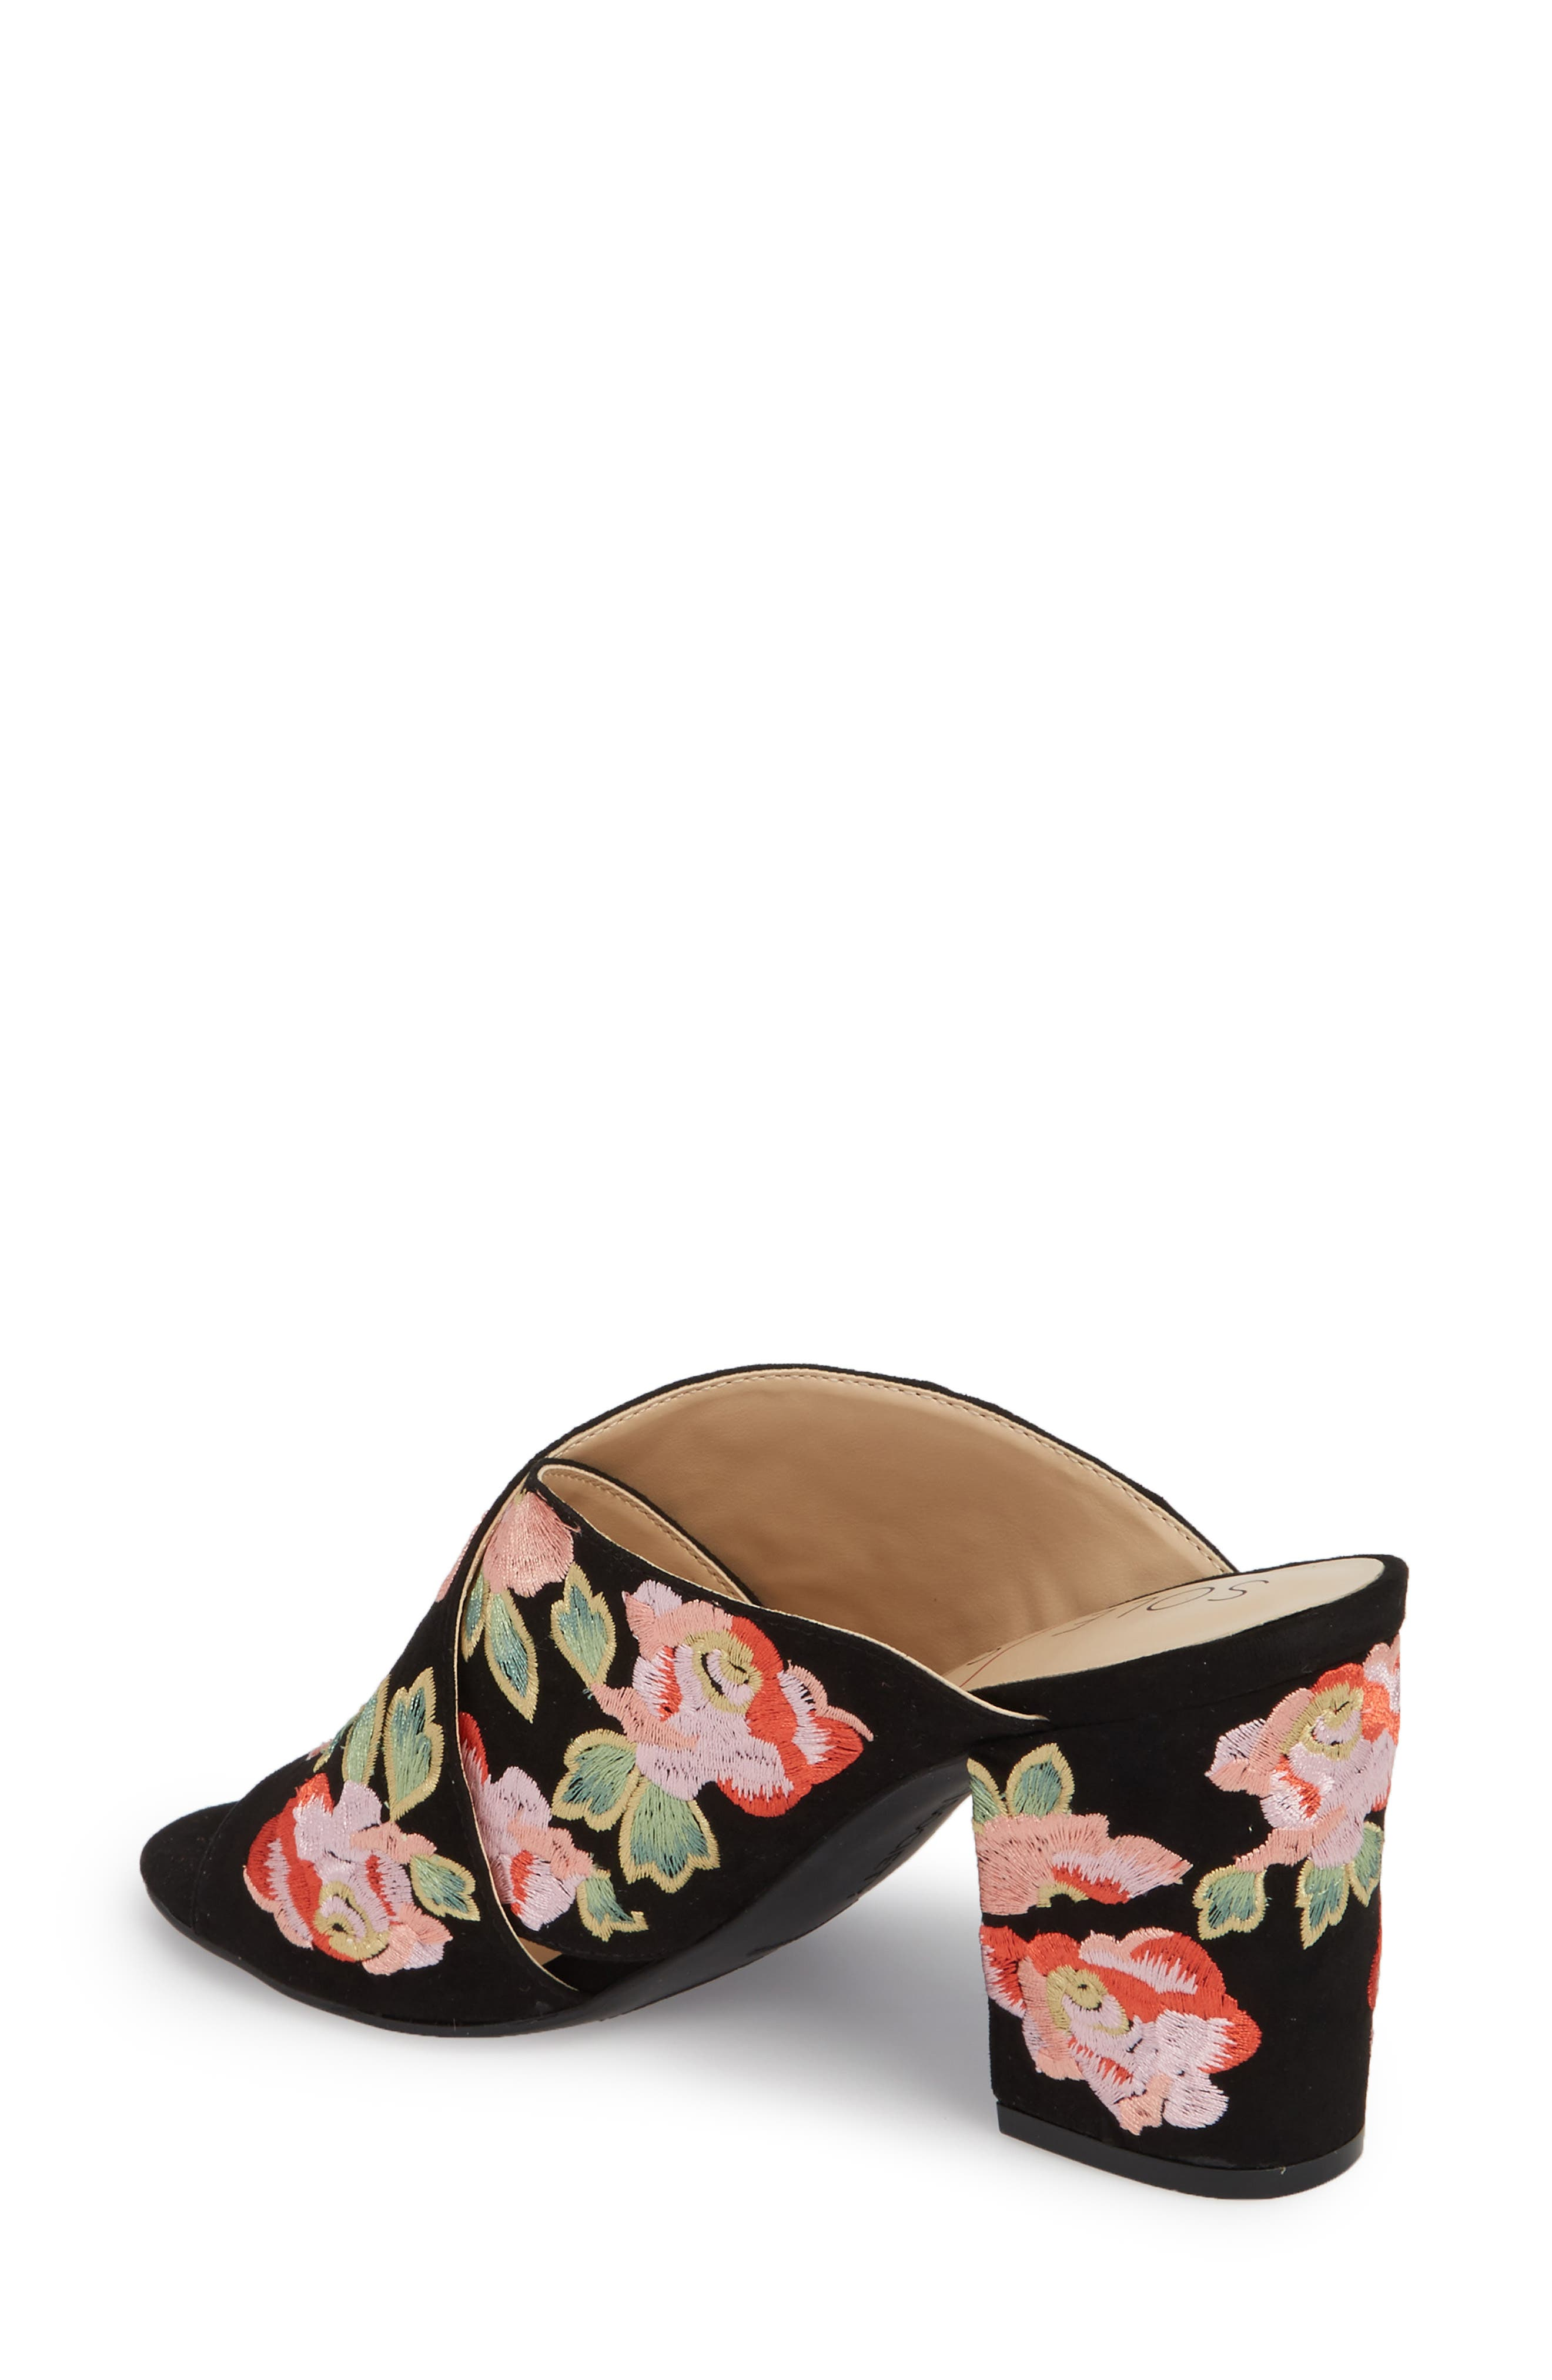 Luella Flower Embroidered Slide,                             Alternate thumbnail 2, color,                             Black/ Coral Multi Embroidery